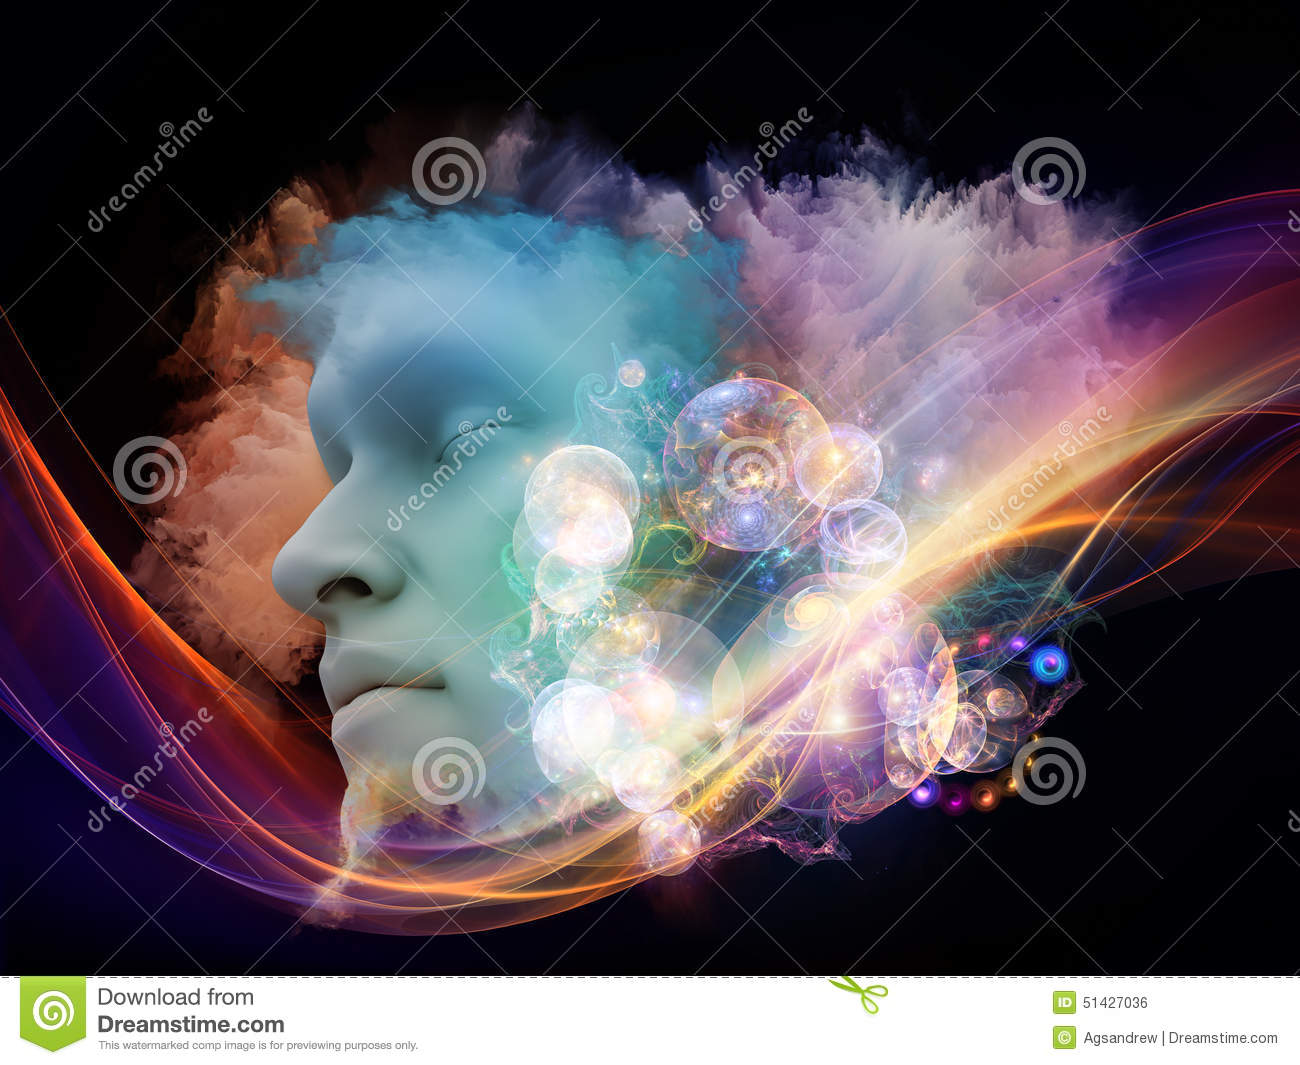 Only Metaphor >> Virtual Dream stock illustration. Image of face, abstract - 51427036